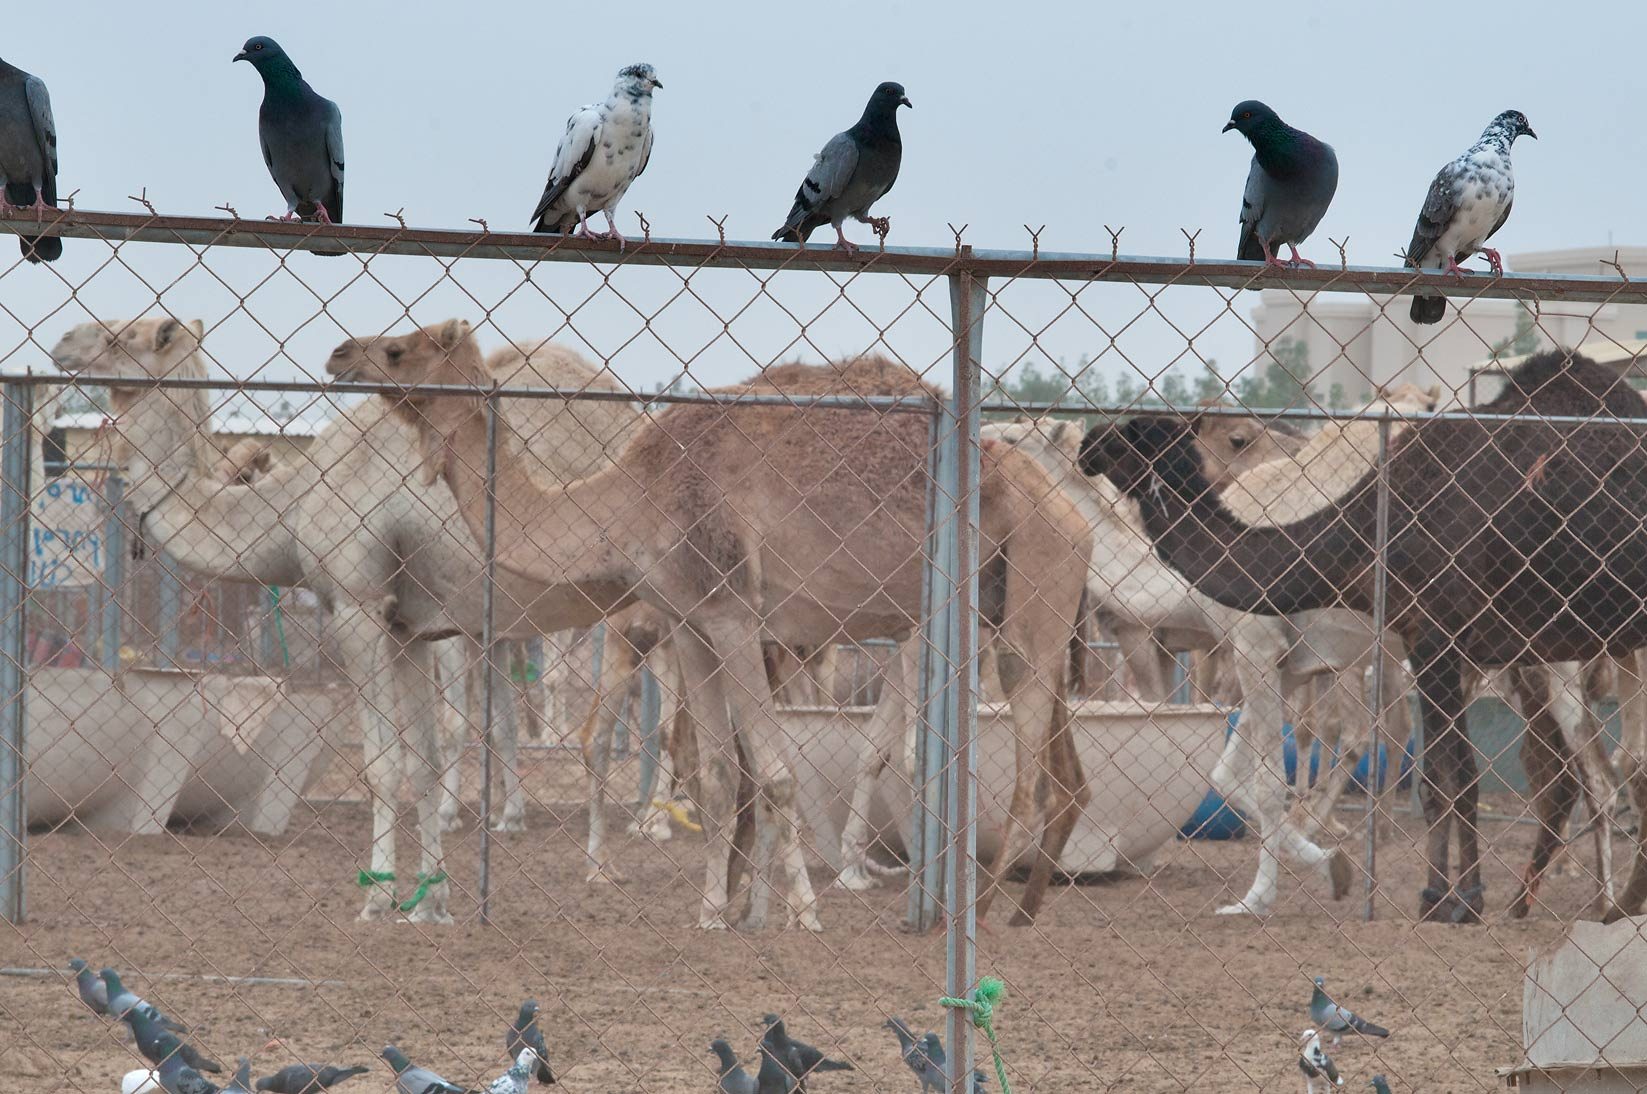 Pigeons sitting on a fence of a pen in Camel Market, Wholesale Markets area. Doha, Qatar